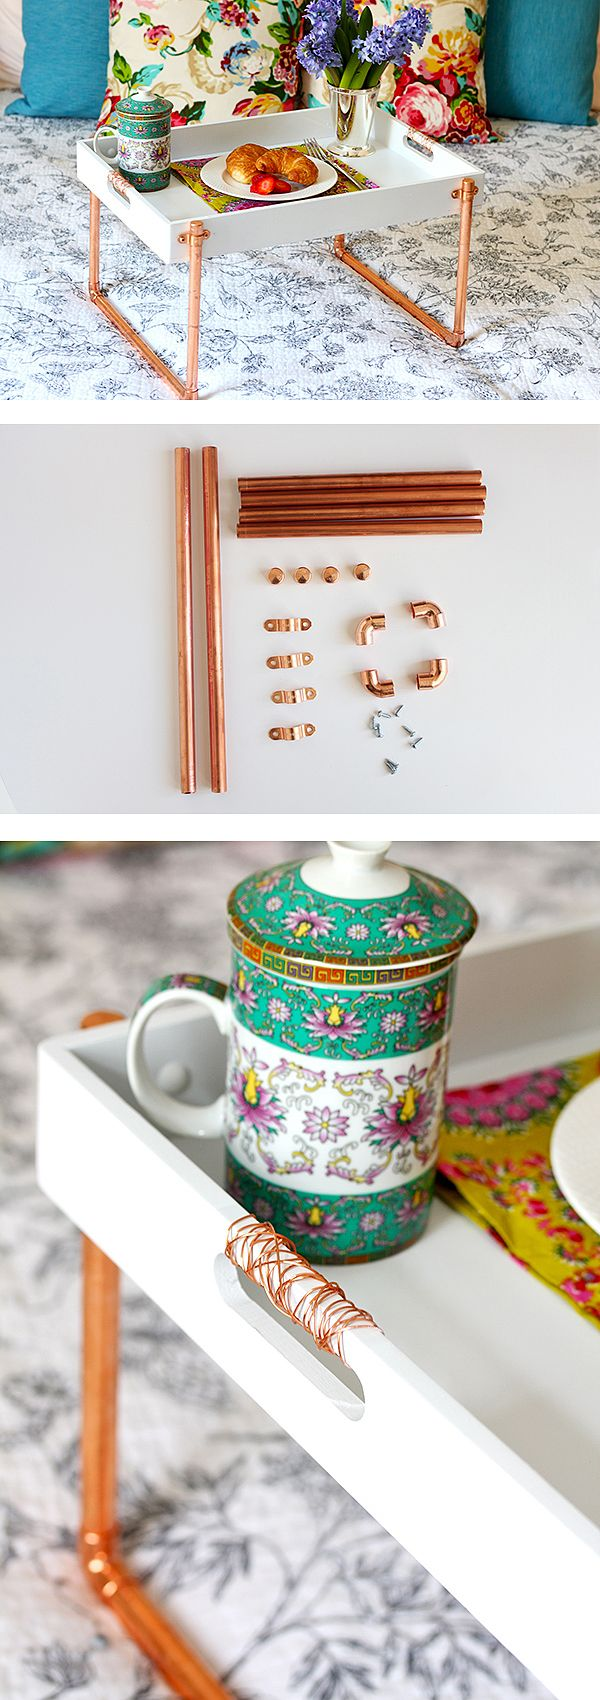 The copper pipe legs turned a simple wooden tray into a lovely and functional breakfast in bed tray in this pipe project by Amy Mikkelsen of Your Southern Peach. To make her tray even more glam, she added copper leaf to the pipe to make it extra shiny. Check out the tutorial on The Home Depot Blog. || @yoursouthpeach